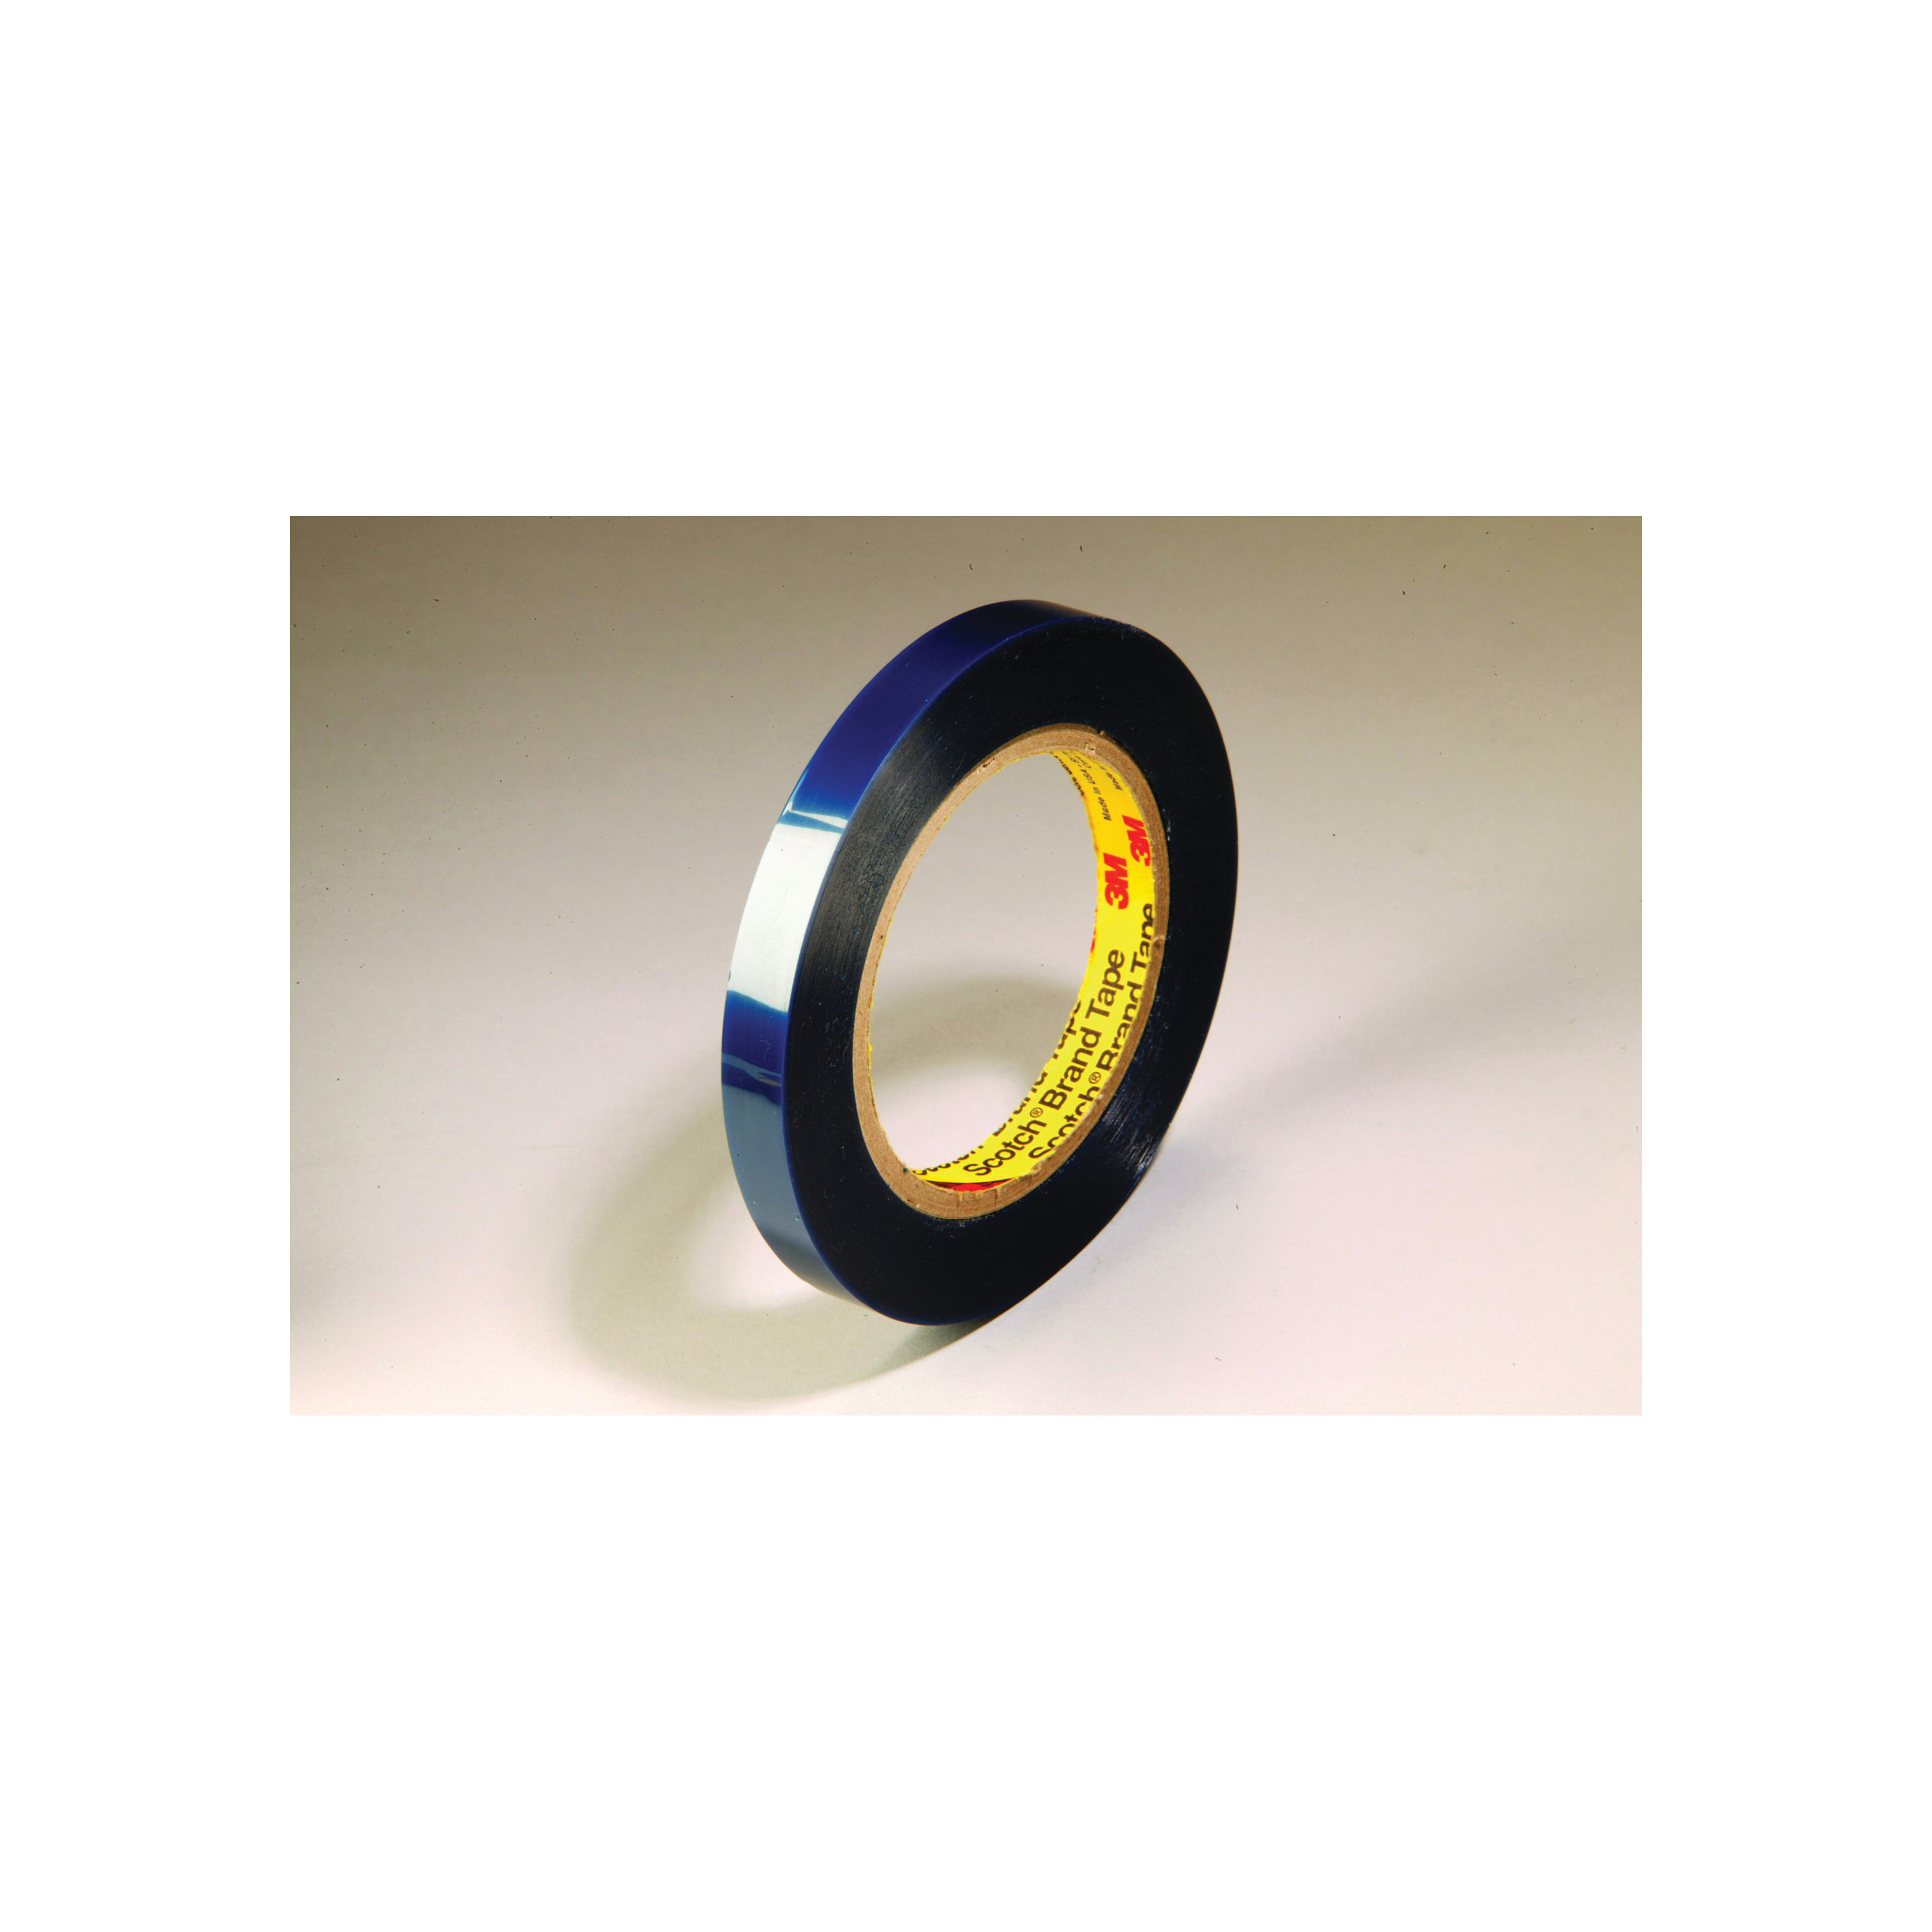 3M™ 051111-92743 General Purpose Masking Tape, 72 yd L x 1-1/2 in W, 3.5 mil THK, Silicone Adhesive, 2 mil Polyester Backing